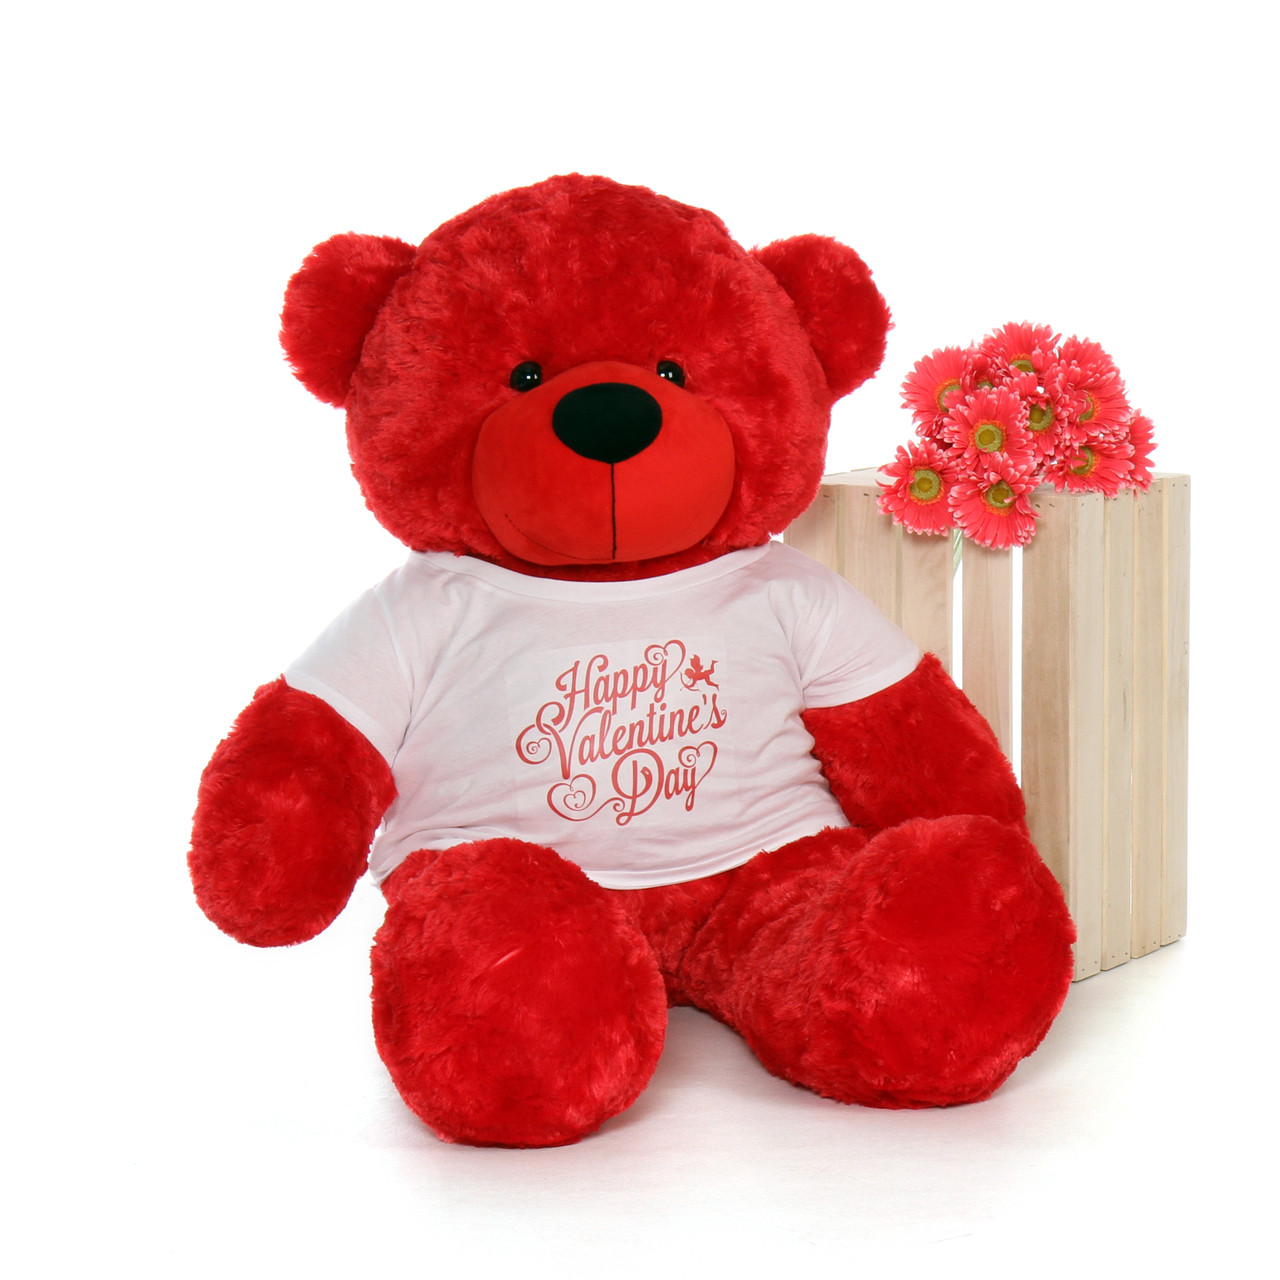 4ft life size teddy bear wearing happy valentines day shirt choose your favorite fur color - Giant Teddy Bears For Valentines Day